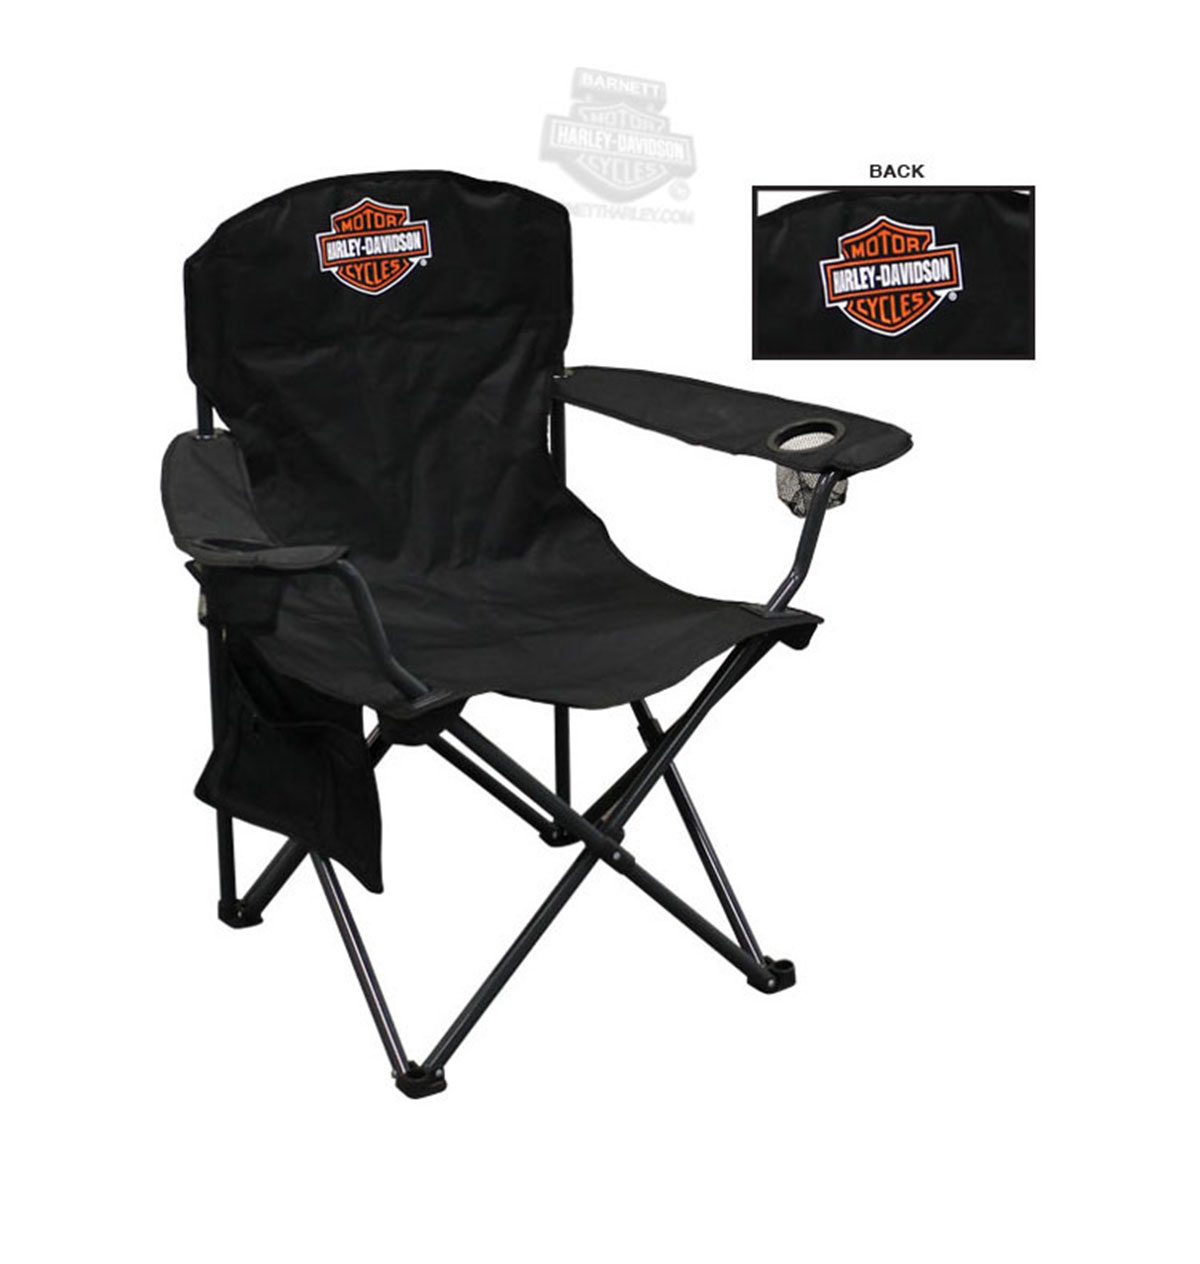 Harley Davidson Chairs Ch30264 Harley Davidson B Ands With Drink Holder Xl Black